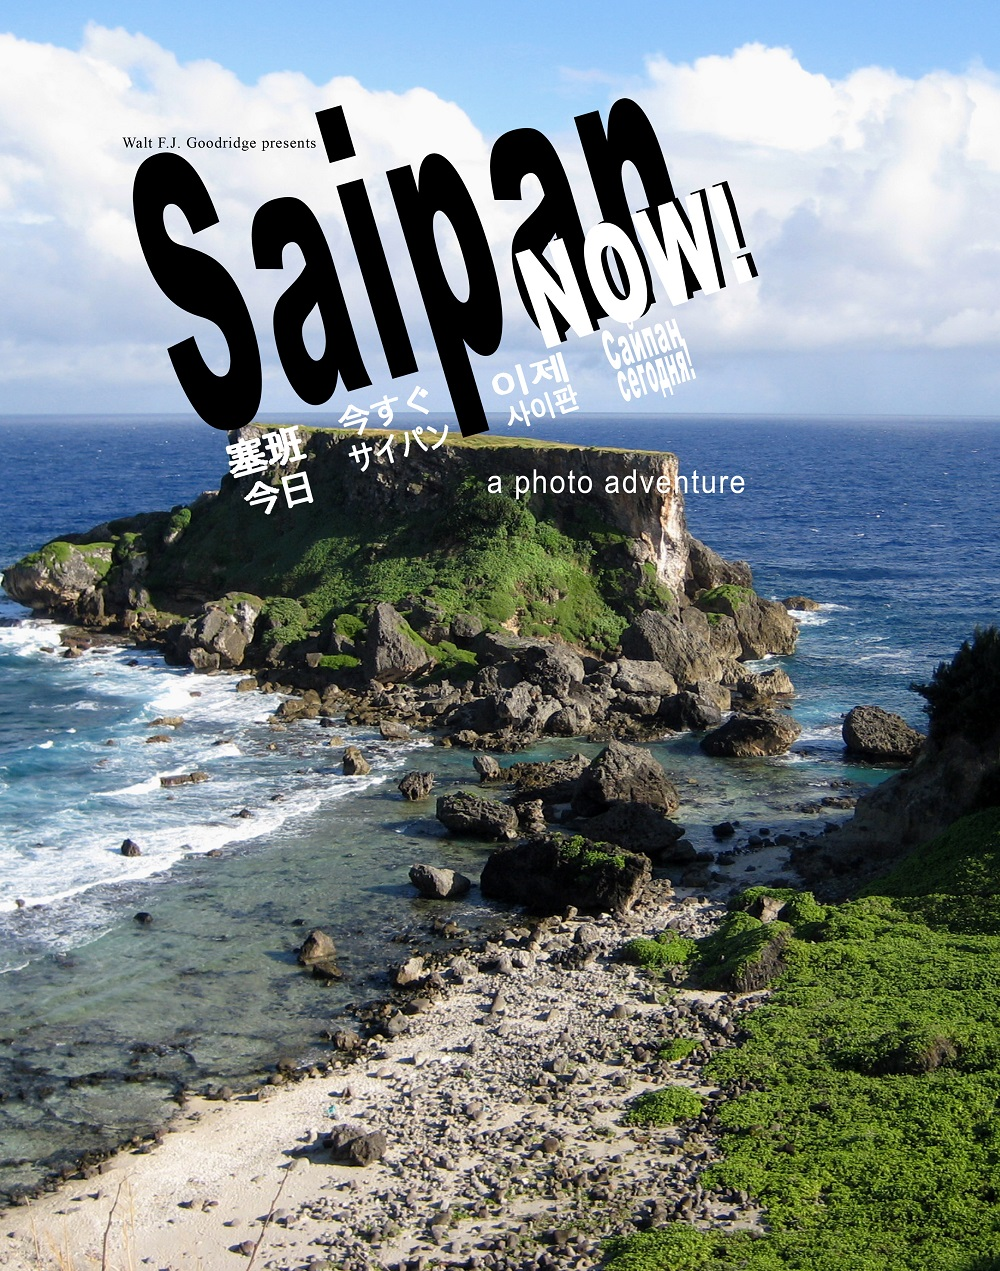 Saipan Now book cover image